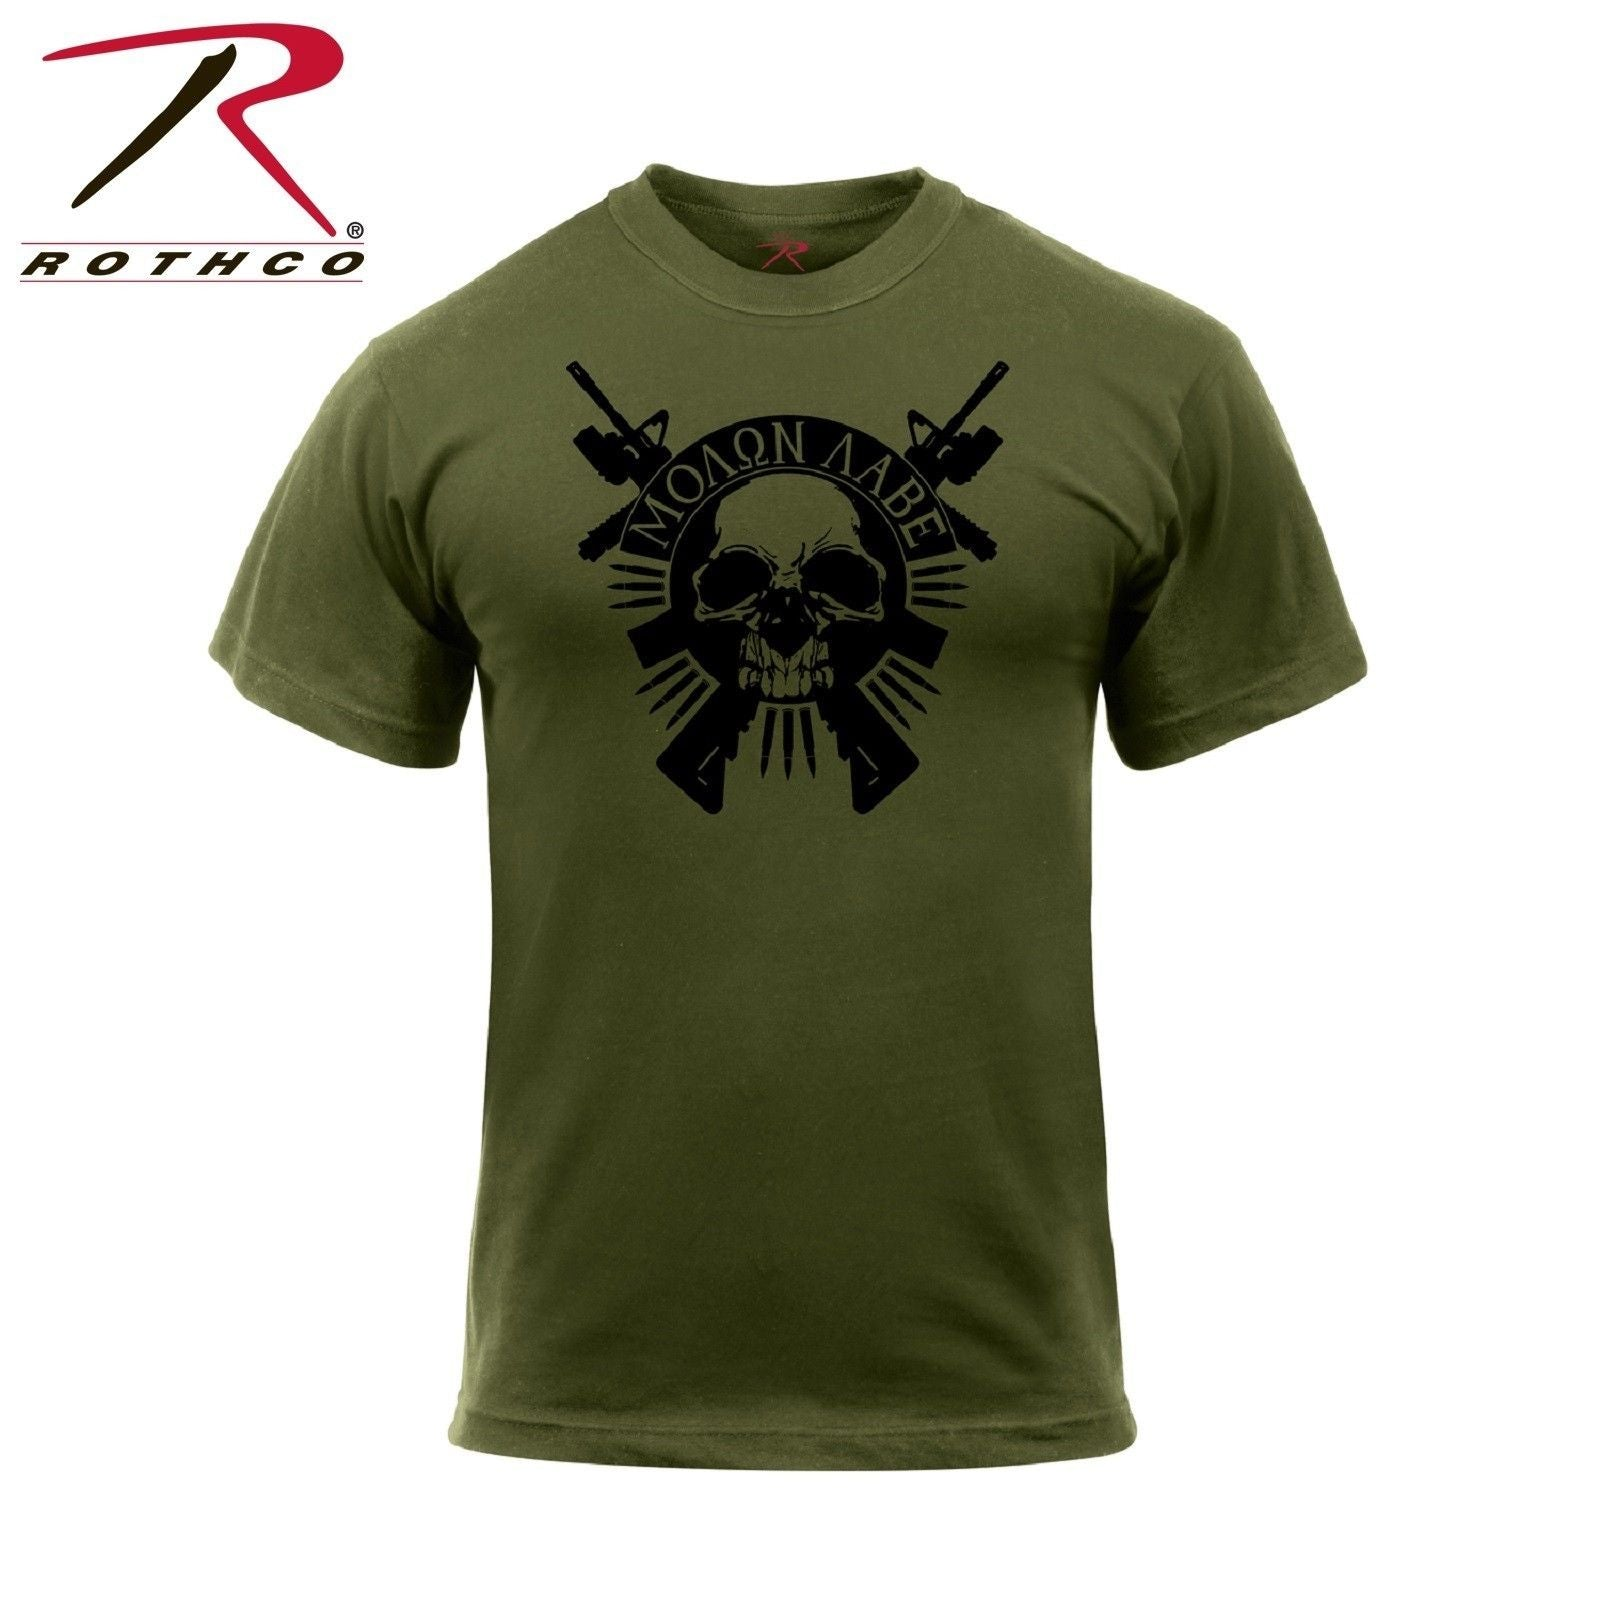 e5b6a5d1d ... Graphic Military Style Athletic Tee. Zoom. Move your mouse over image  or click to enlarge